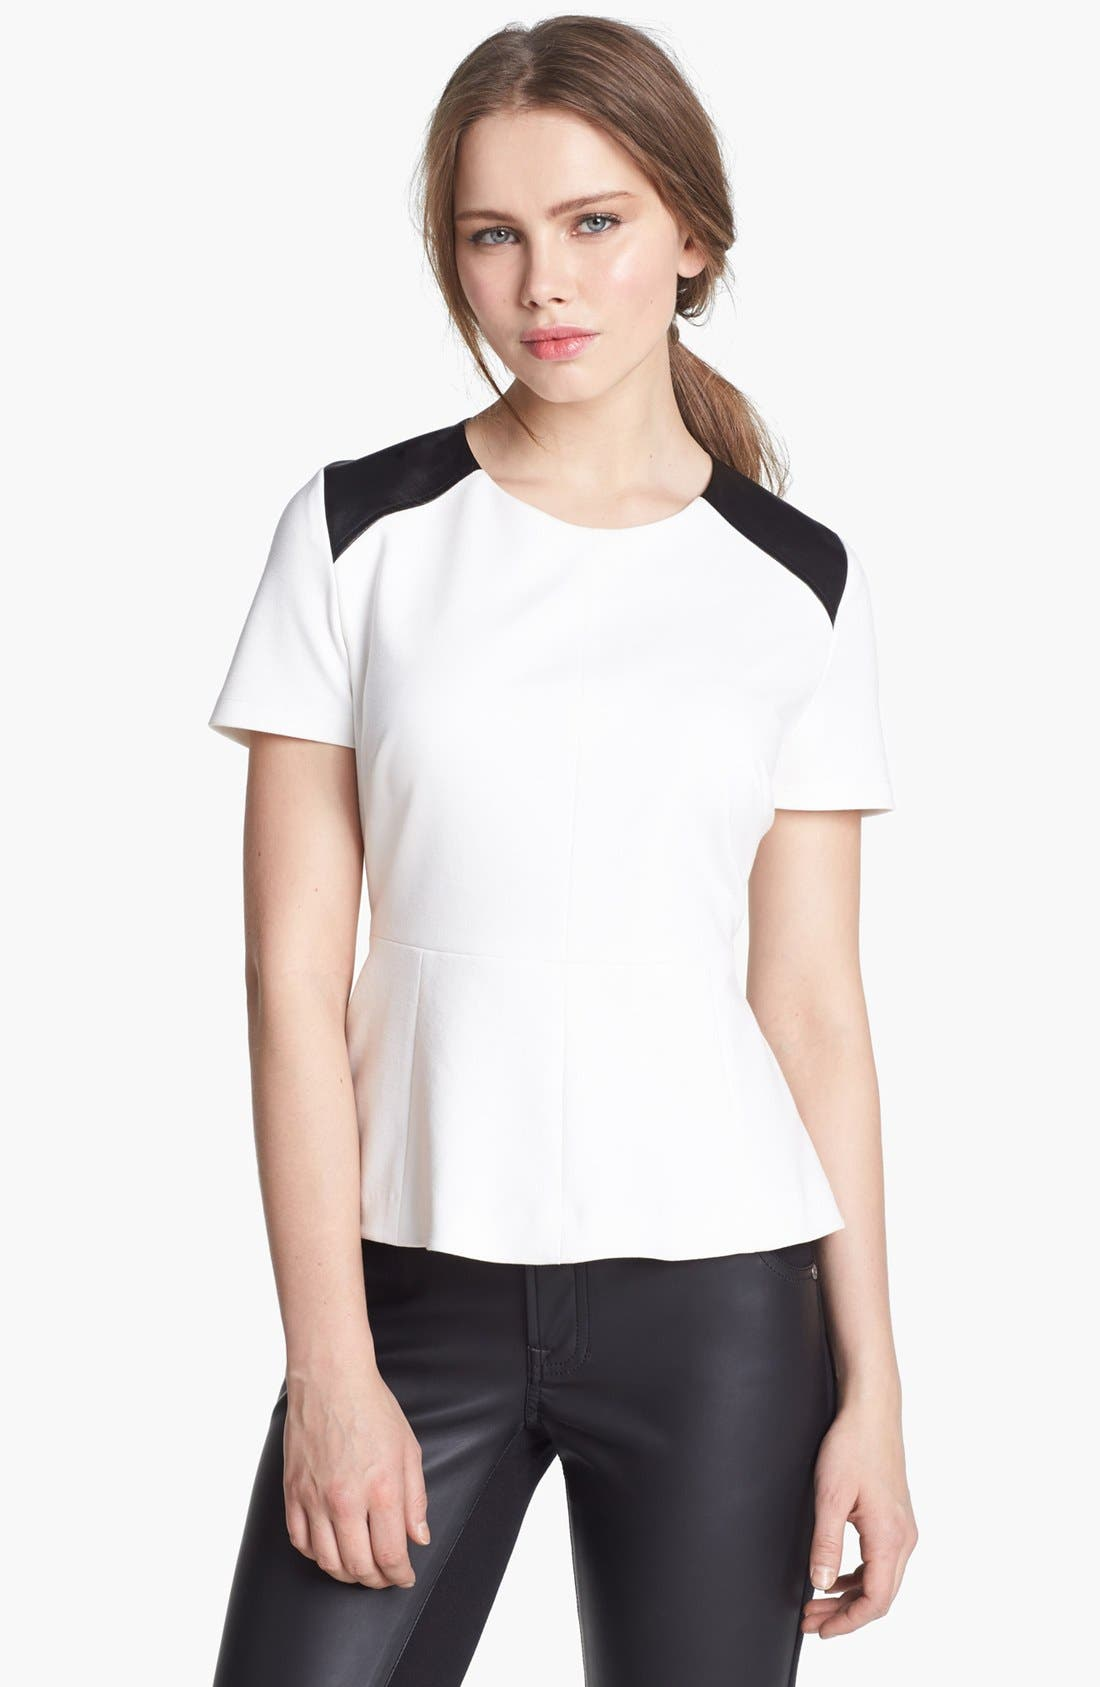 Alternate Image 1 Selected - Vince Camuto Faux Leather Shoulders Peplum Top (Online Only)